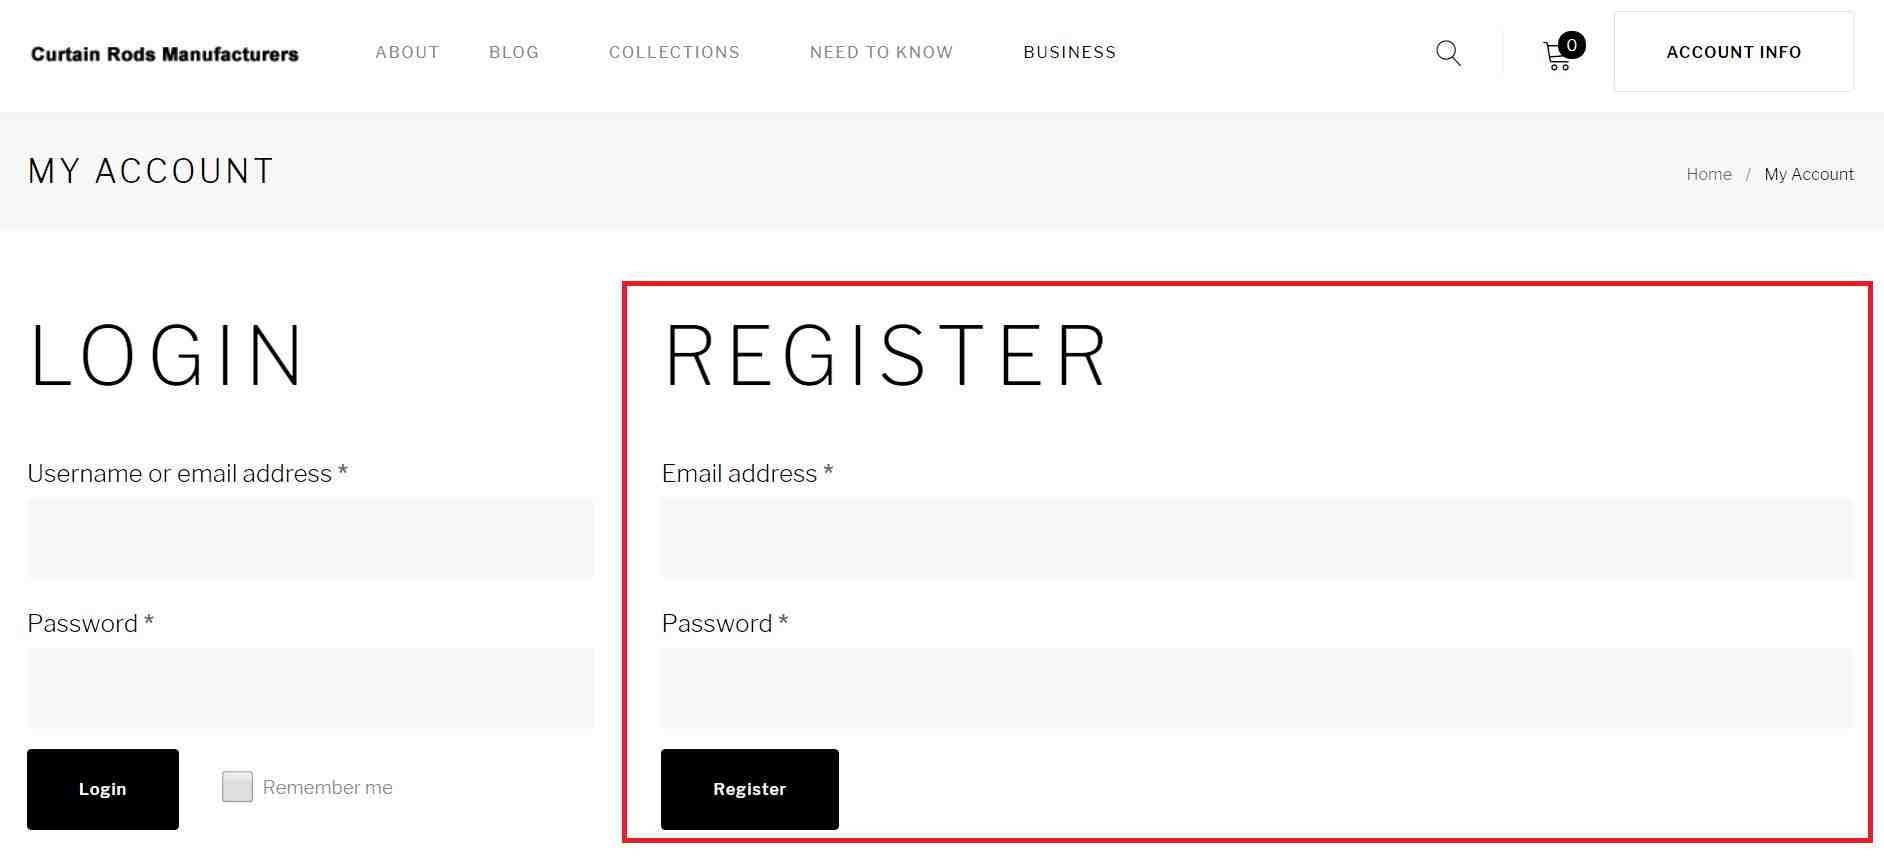 Please provide your email and setup your passwords for registration